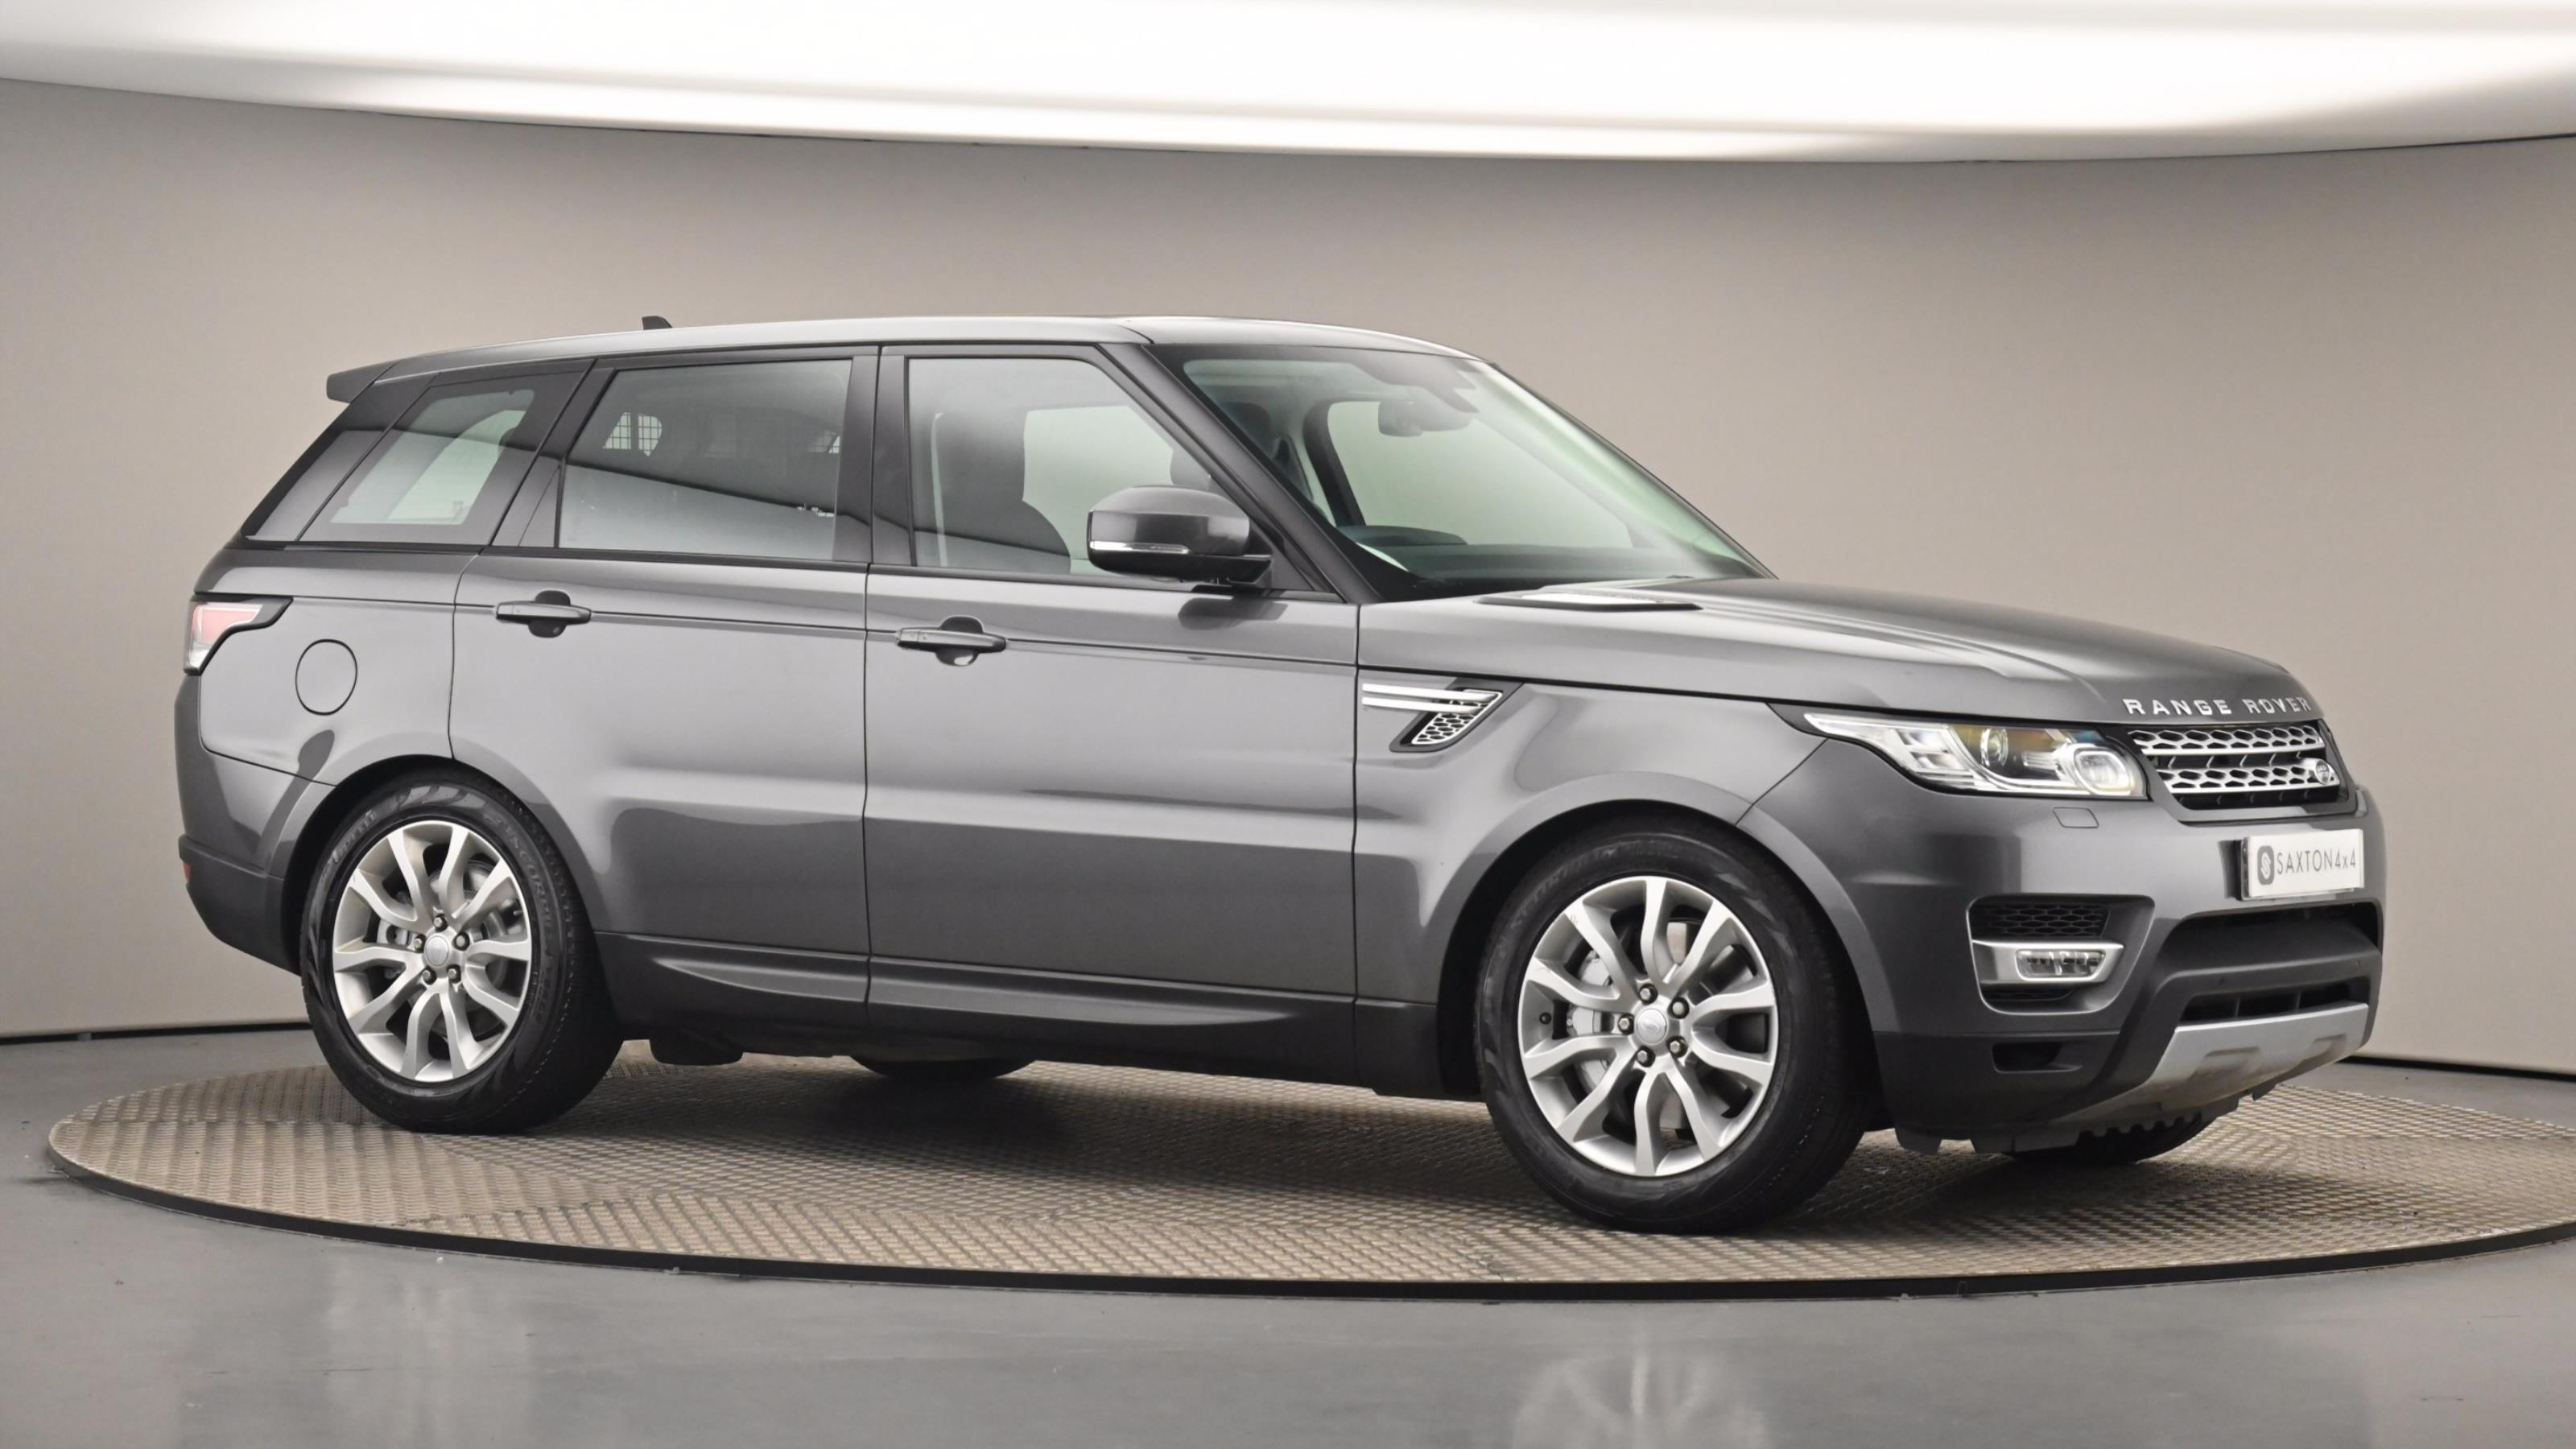 Used 2016 Land Rover RANGE ROVER SPORT 3.0 SDV6 [306] HSE 5dr Auto at Saxton4x4